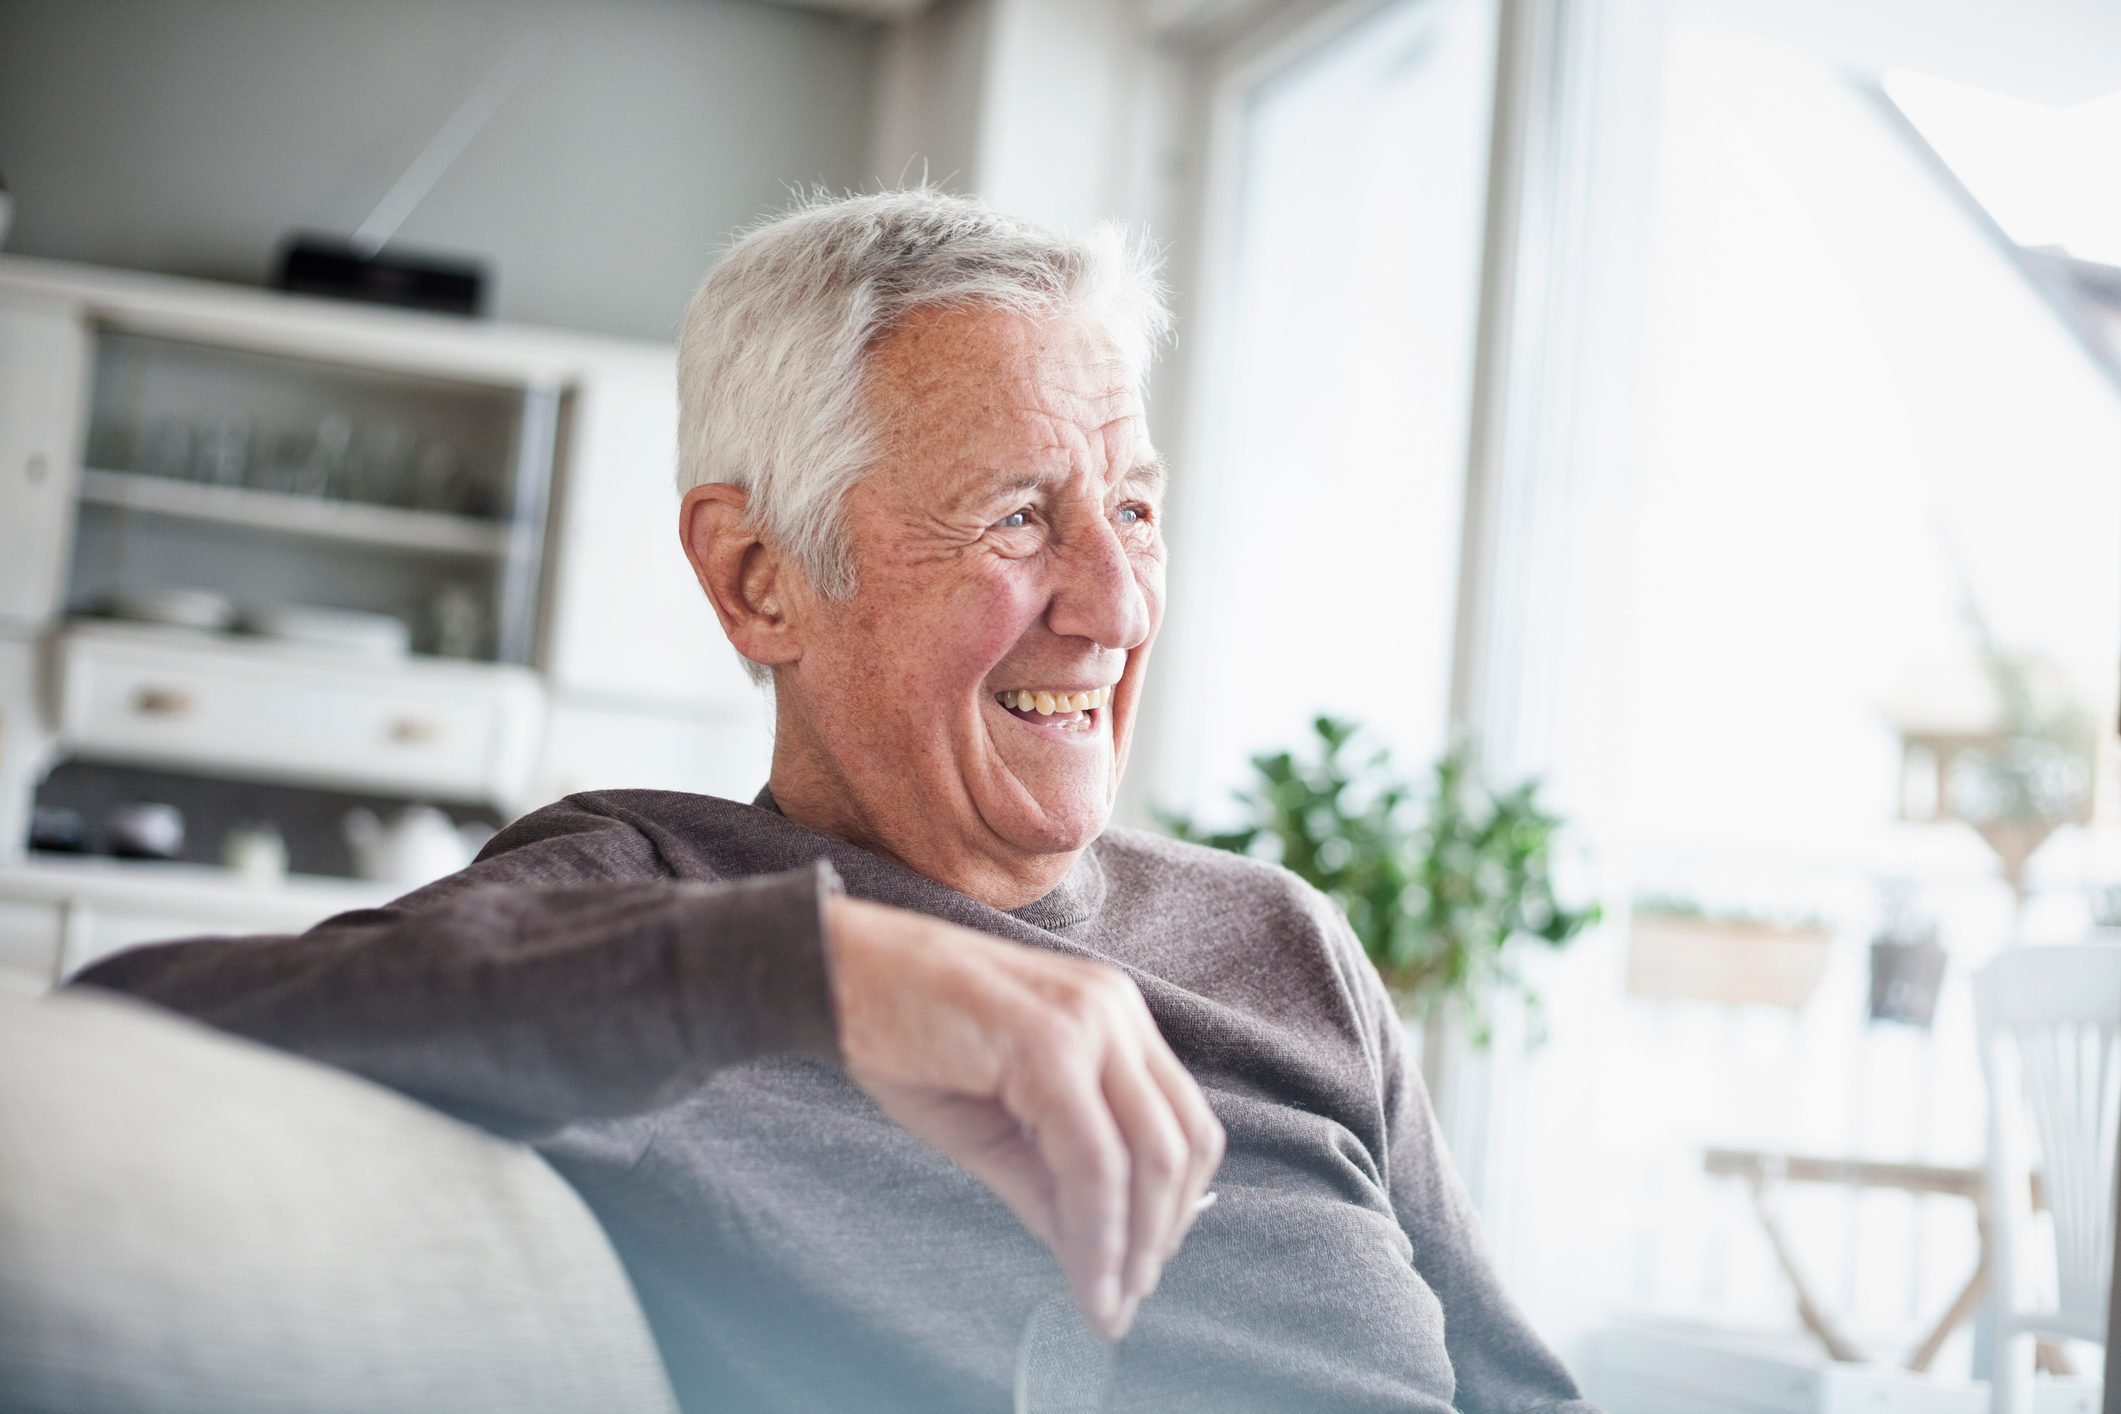 Portrait of laughing senior man sitting on couch at home